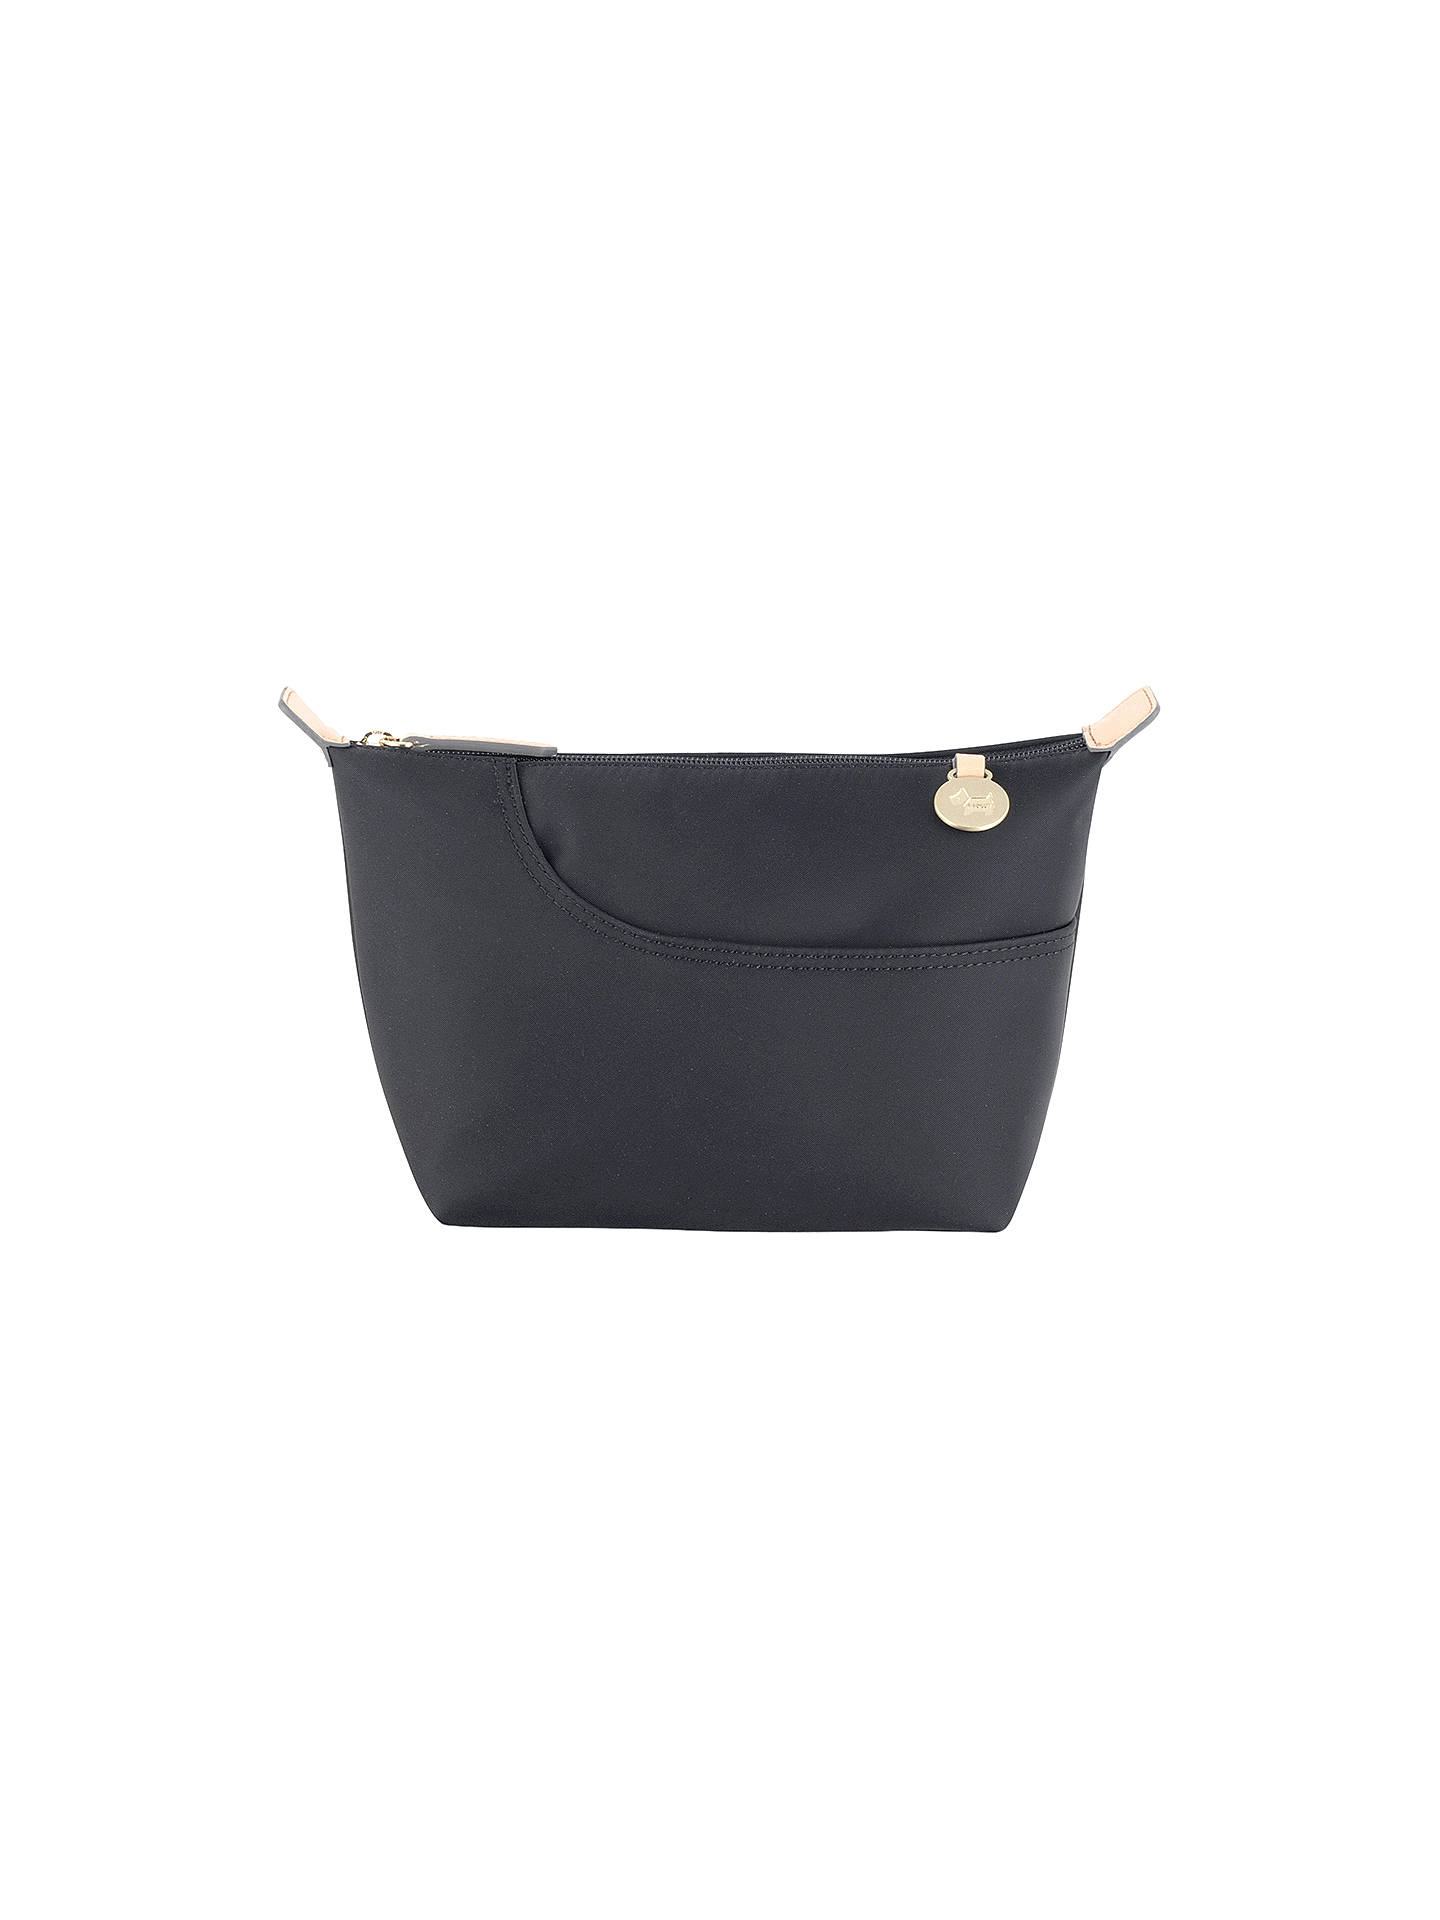 40034f5a0d Radley Pocket Essentials Medium Makeup Bag at John Lewis   Partners